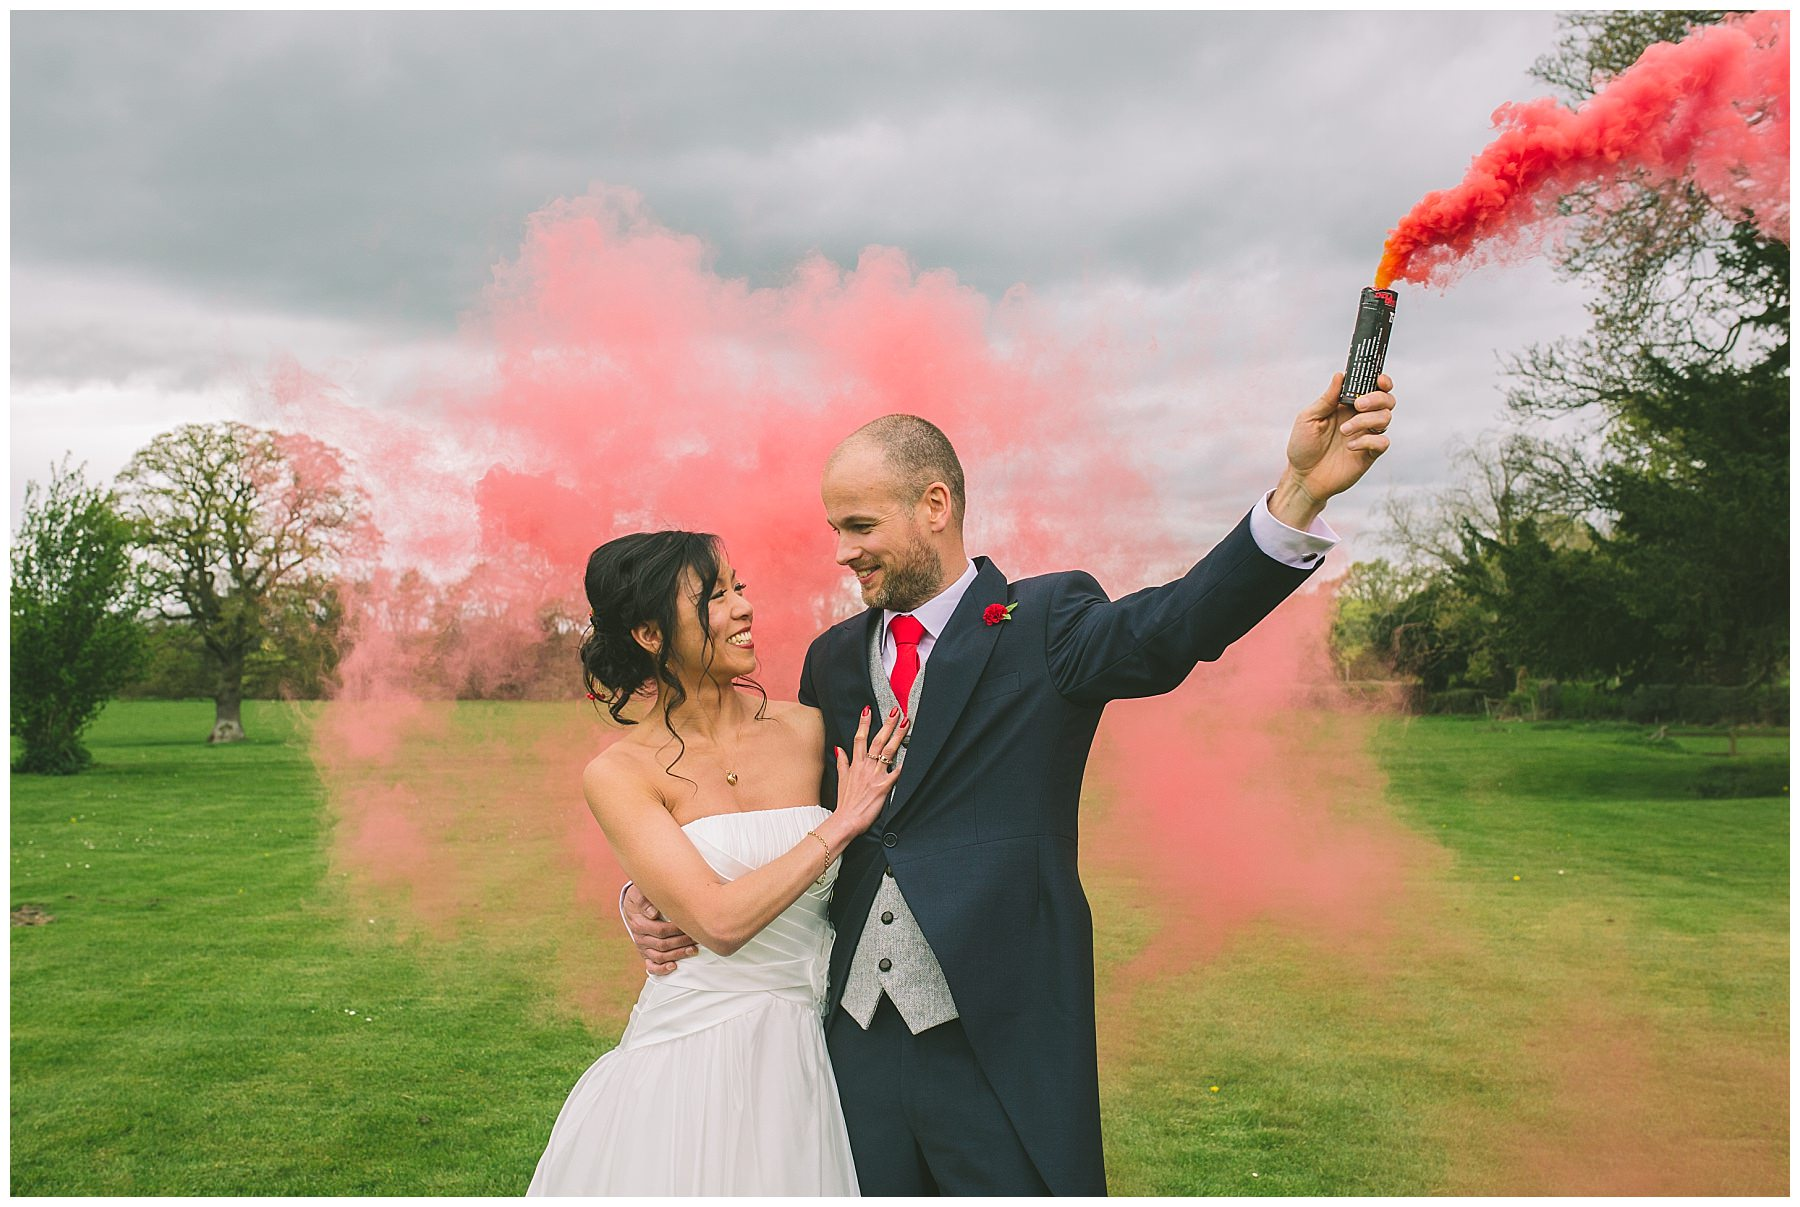 Red Smoke and a loving couple